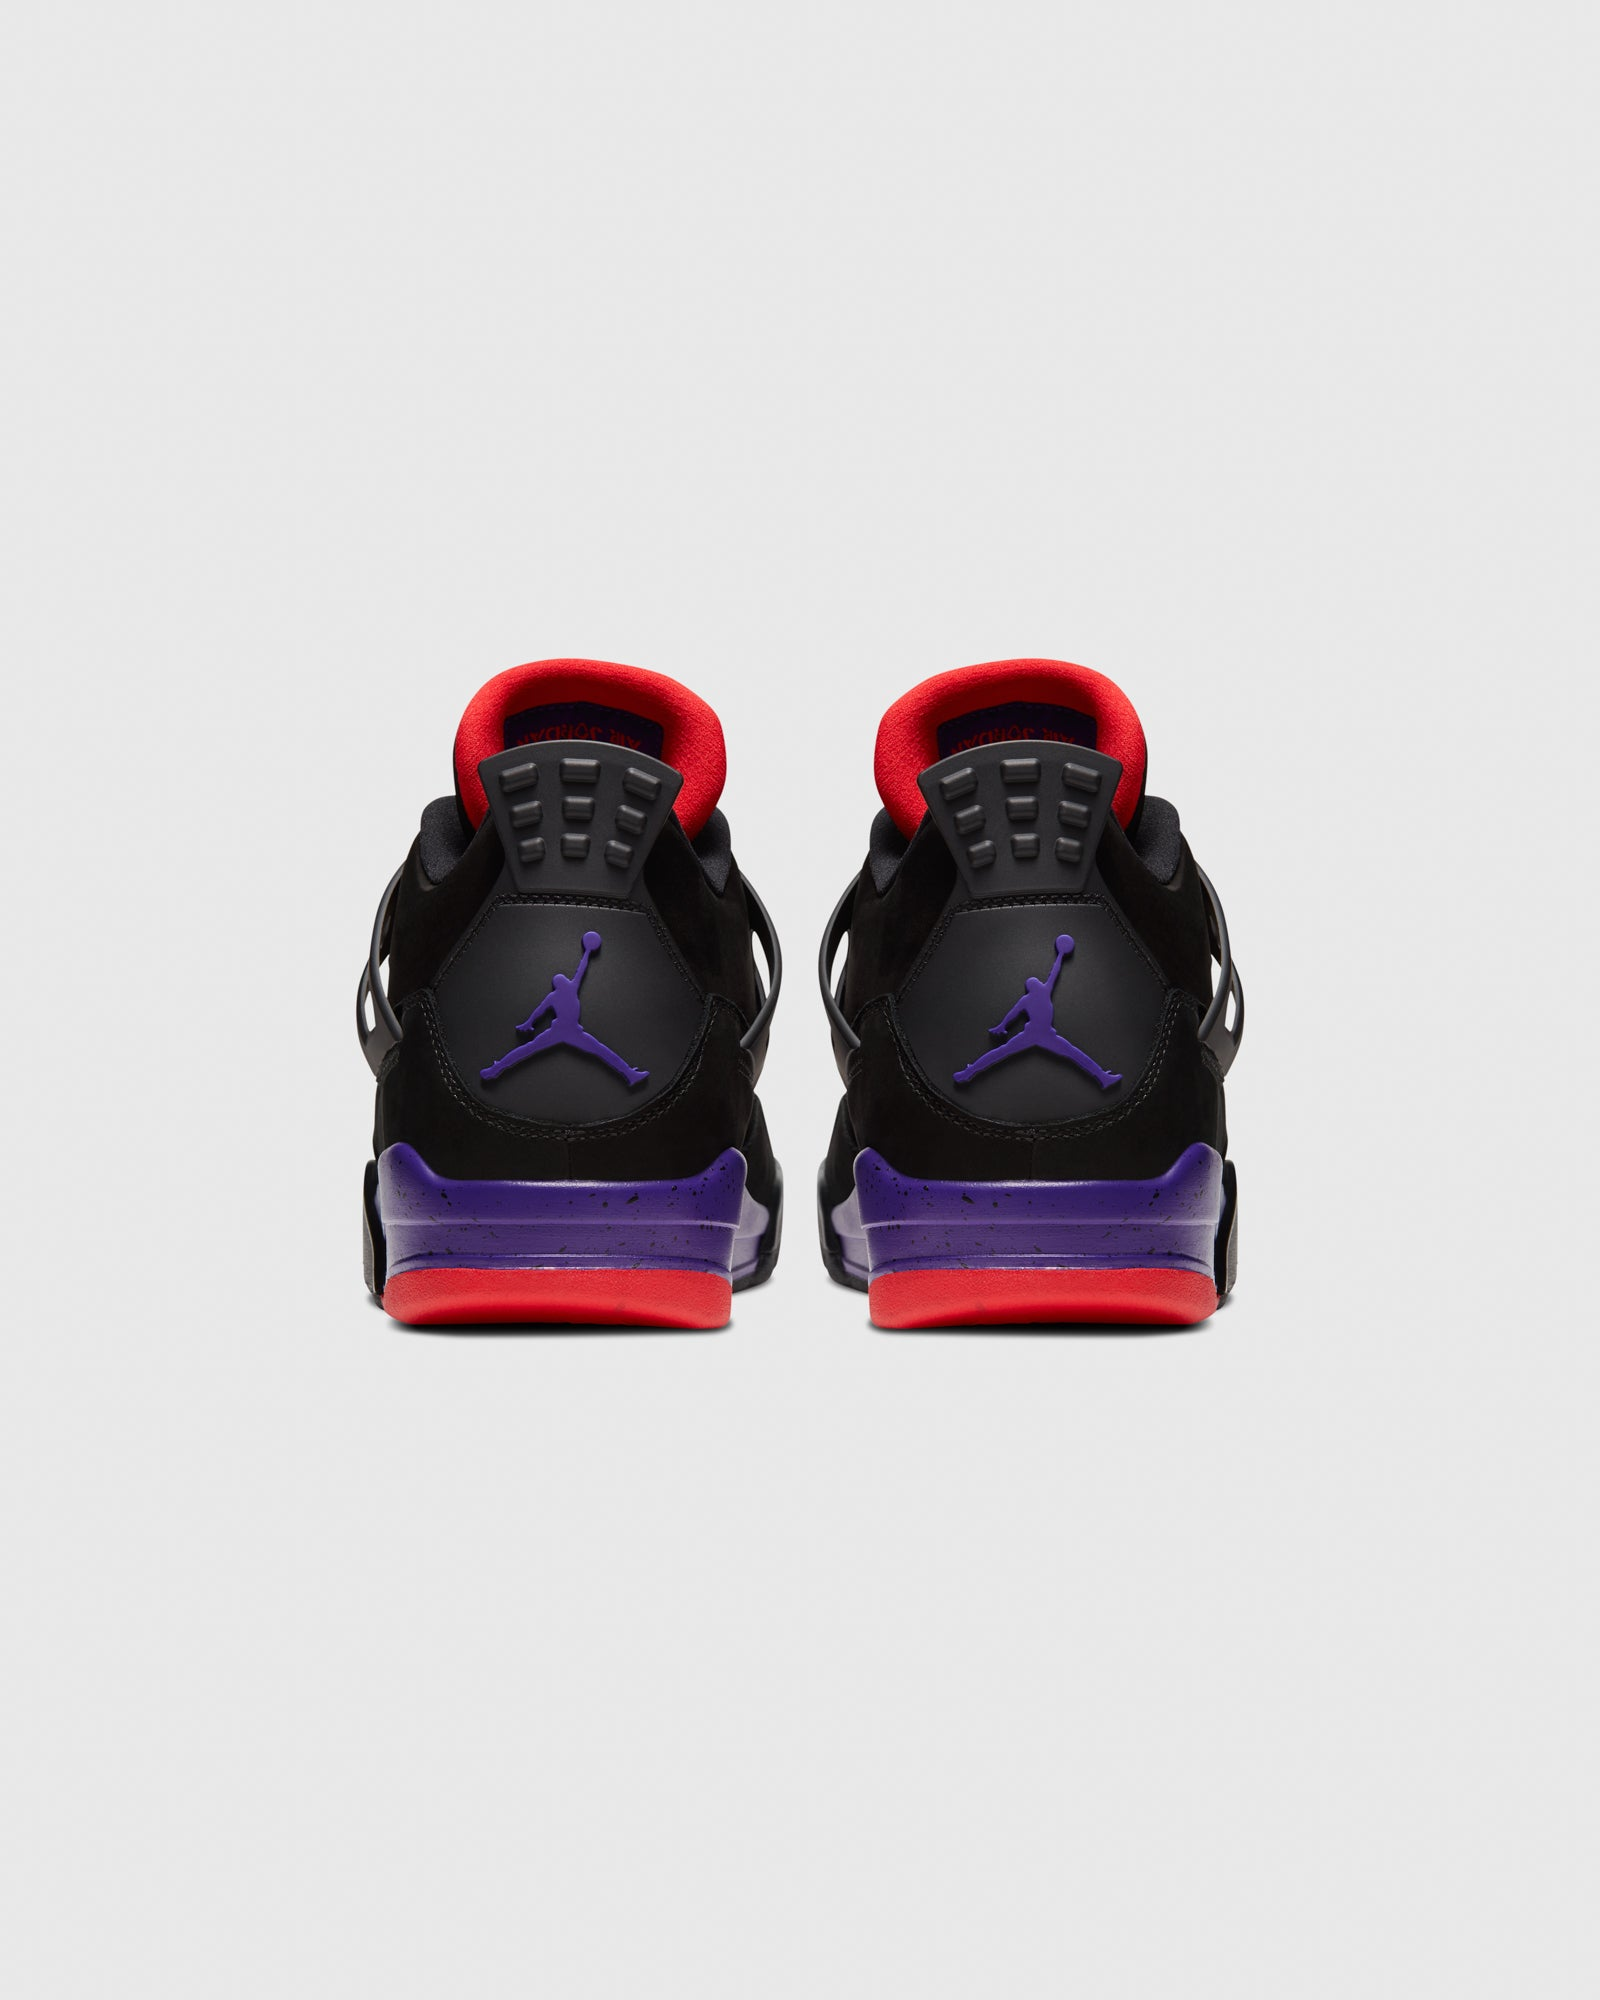 AIR JORDAN IV - BLACK/COURT PURPLE IMAGE #5